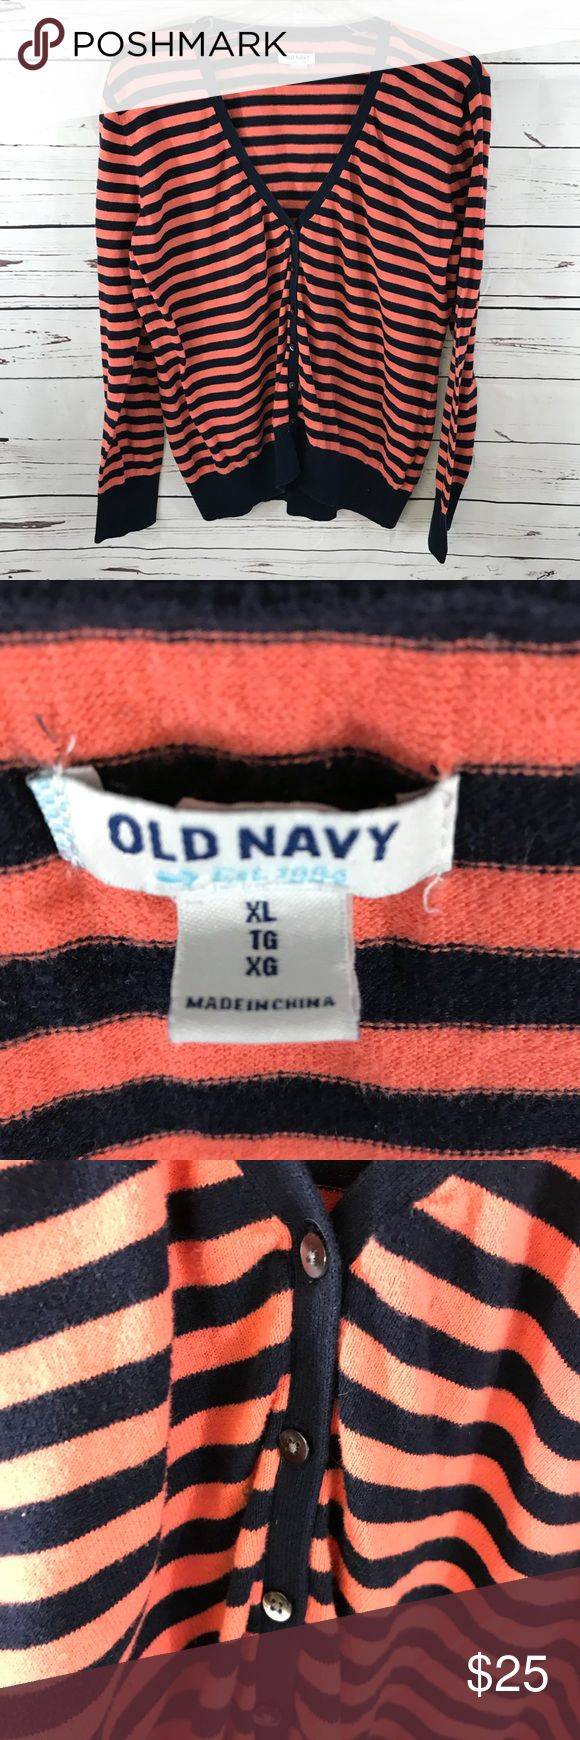 Old Navy XL button front cardigan orange & navy Old Navy XL button front cardigan orange & navy  Orange is a salmon-coral shade of orange.... Very pretty! Old Navy Sweaters Cardigans